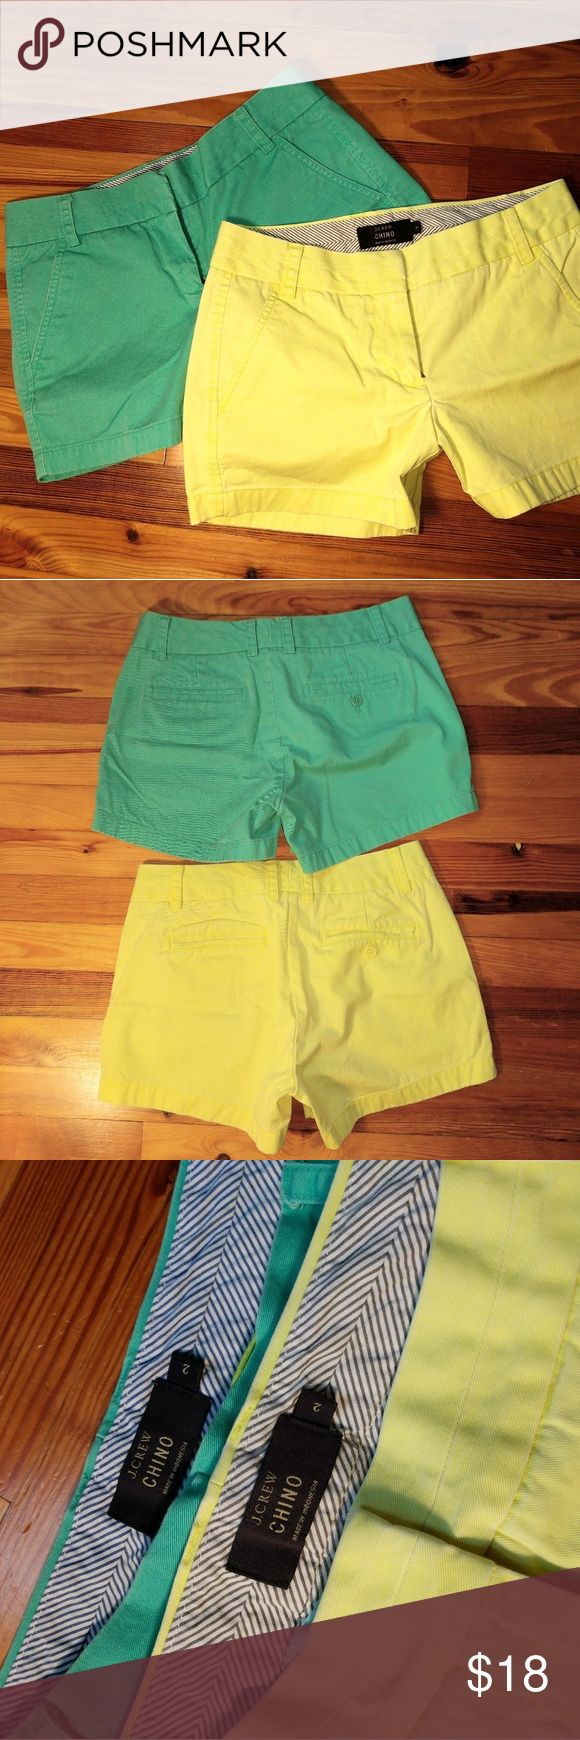 J. Crew Shorts Bundle 2 pair of J Crew Chino Shorts. Price is for the bundle. Yellow (like a neon yellow), and turquoise green. Size 2, good condition. J. Crew Shorts